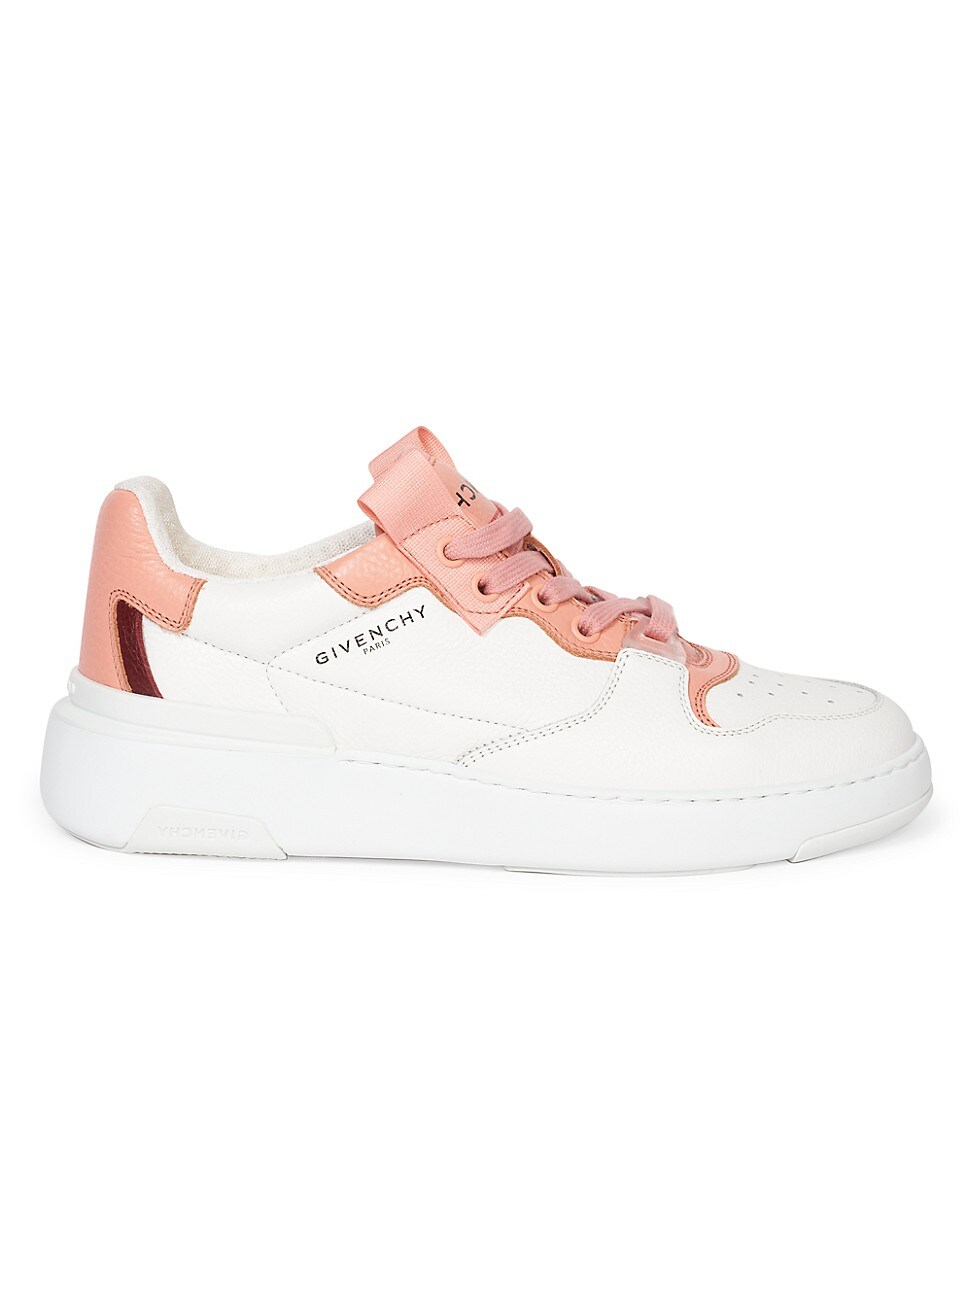 Givenchy WOMEN'S WOMEN'S SPECTRE TWO-TONE LEATHER SNEAKERS